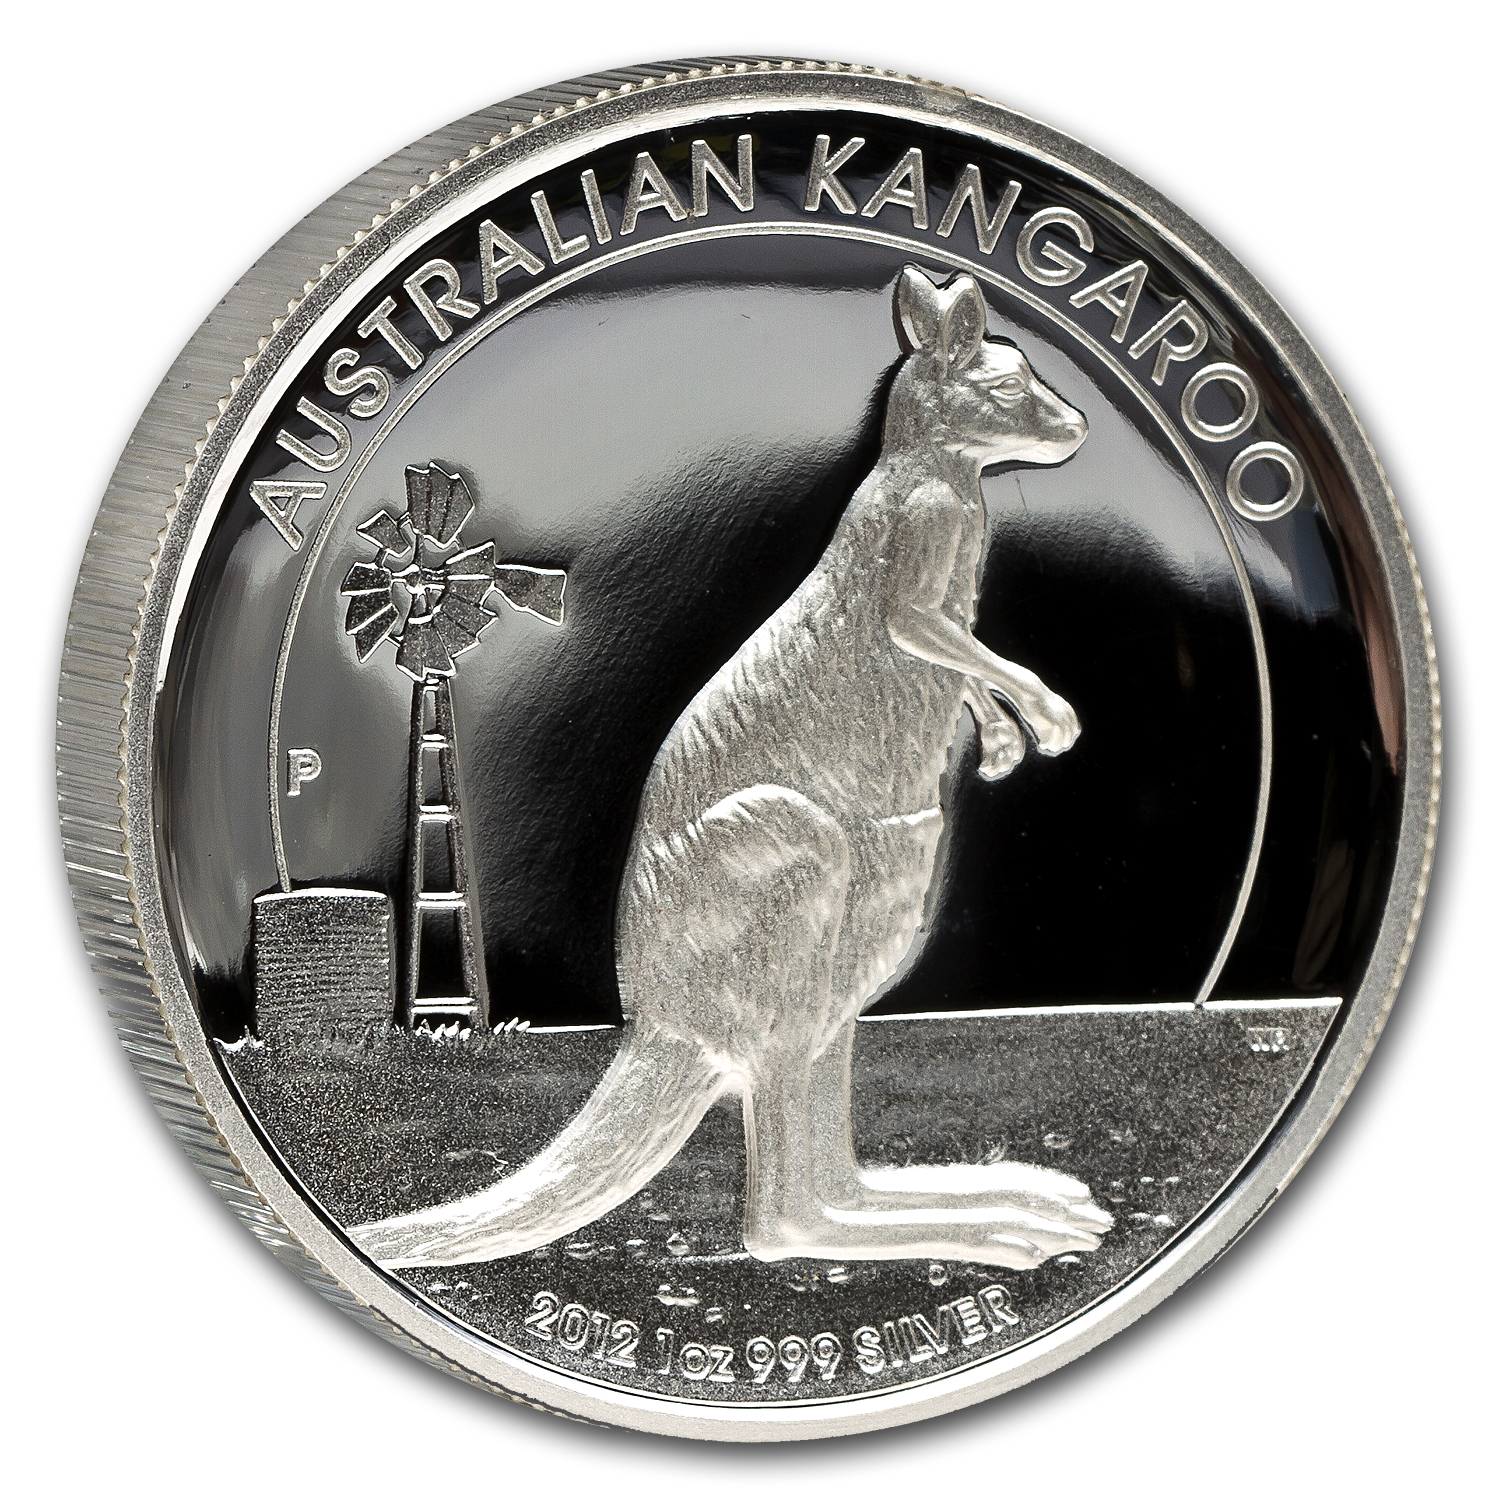 2012 1 oz Silver Australian Kangaroo Proof (High Relief)